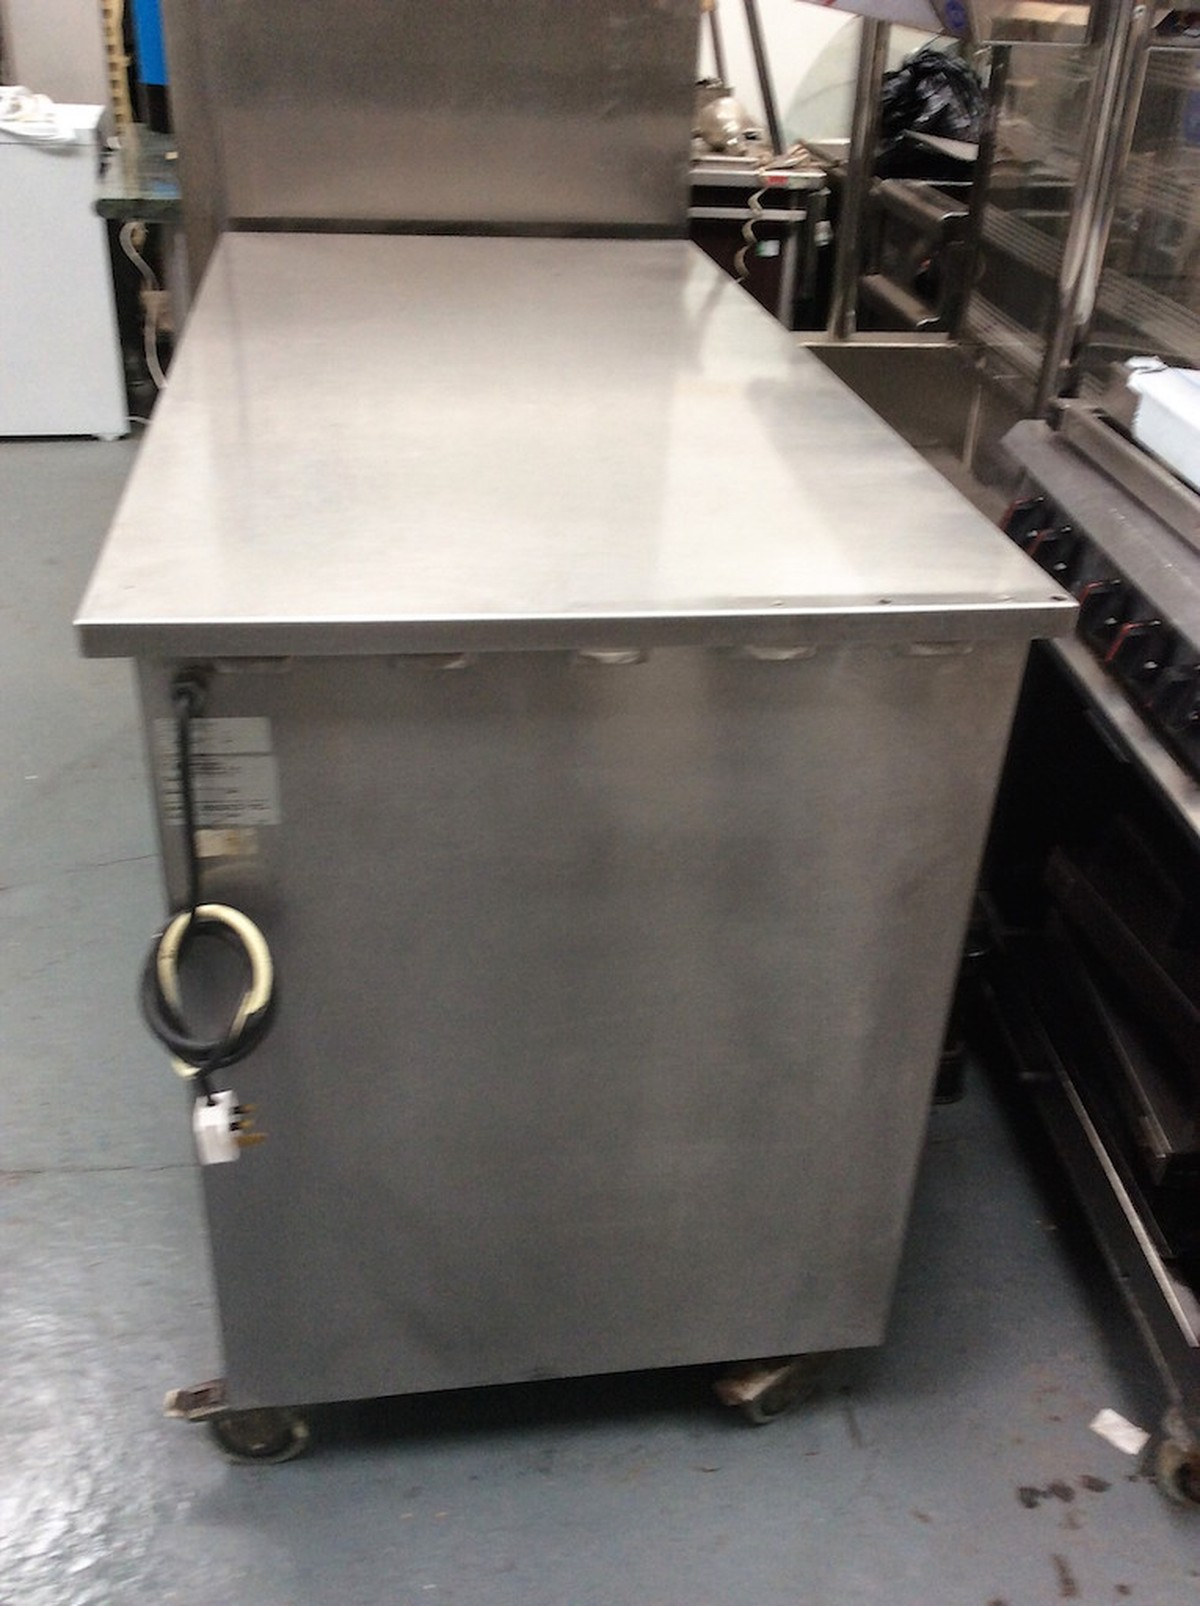 Table Top Dishwasher For Sale In Norwich : ... Equipment Hot Cupboards Caterlux Hot Cupboard - Norwich, Norfolk